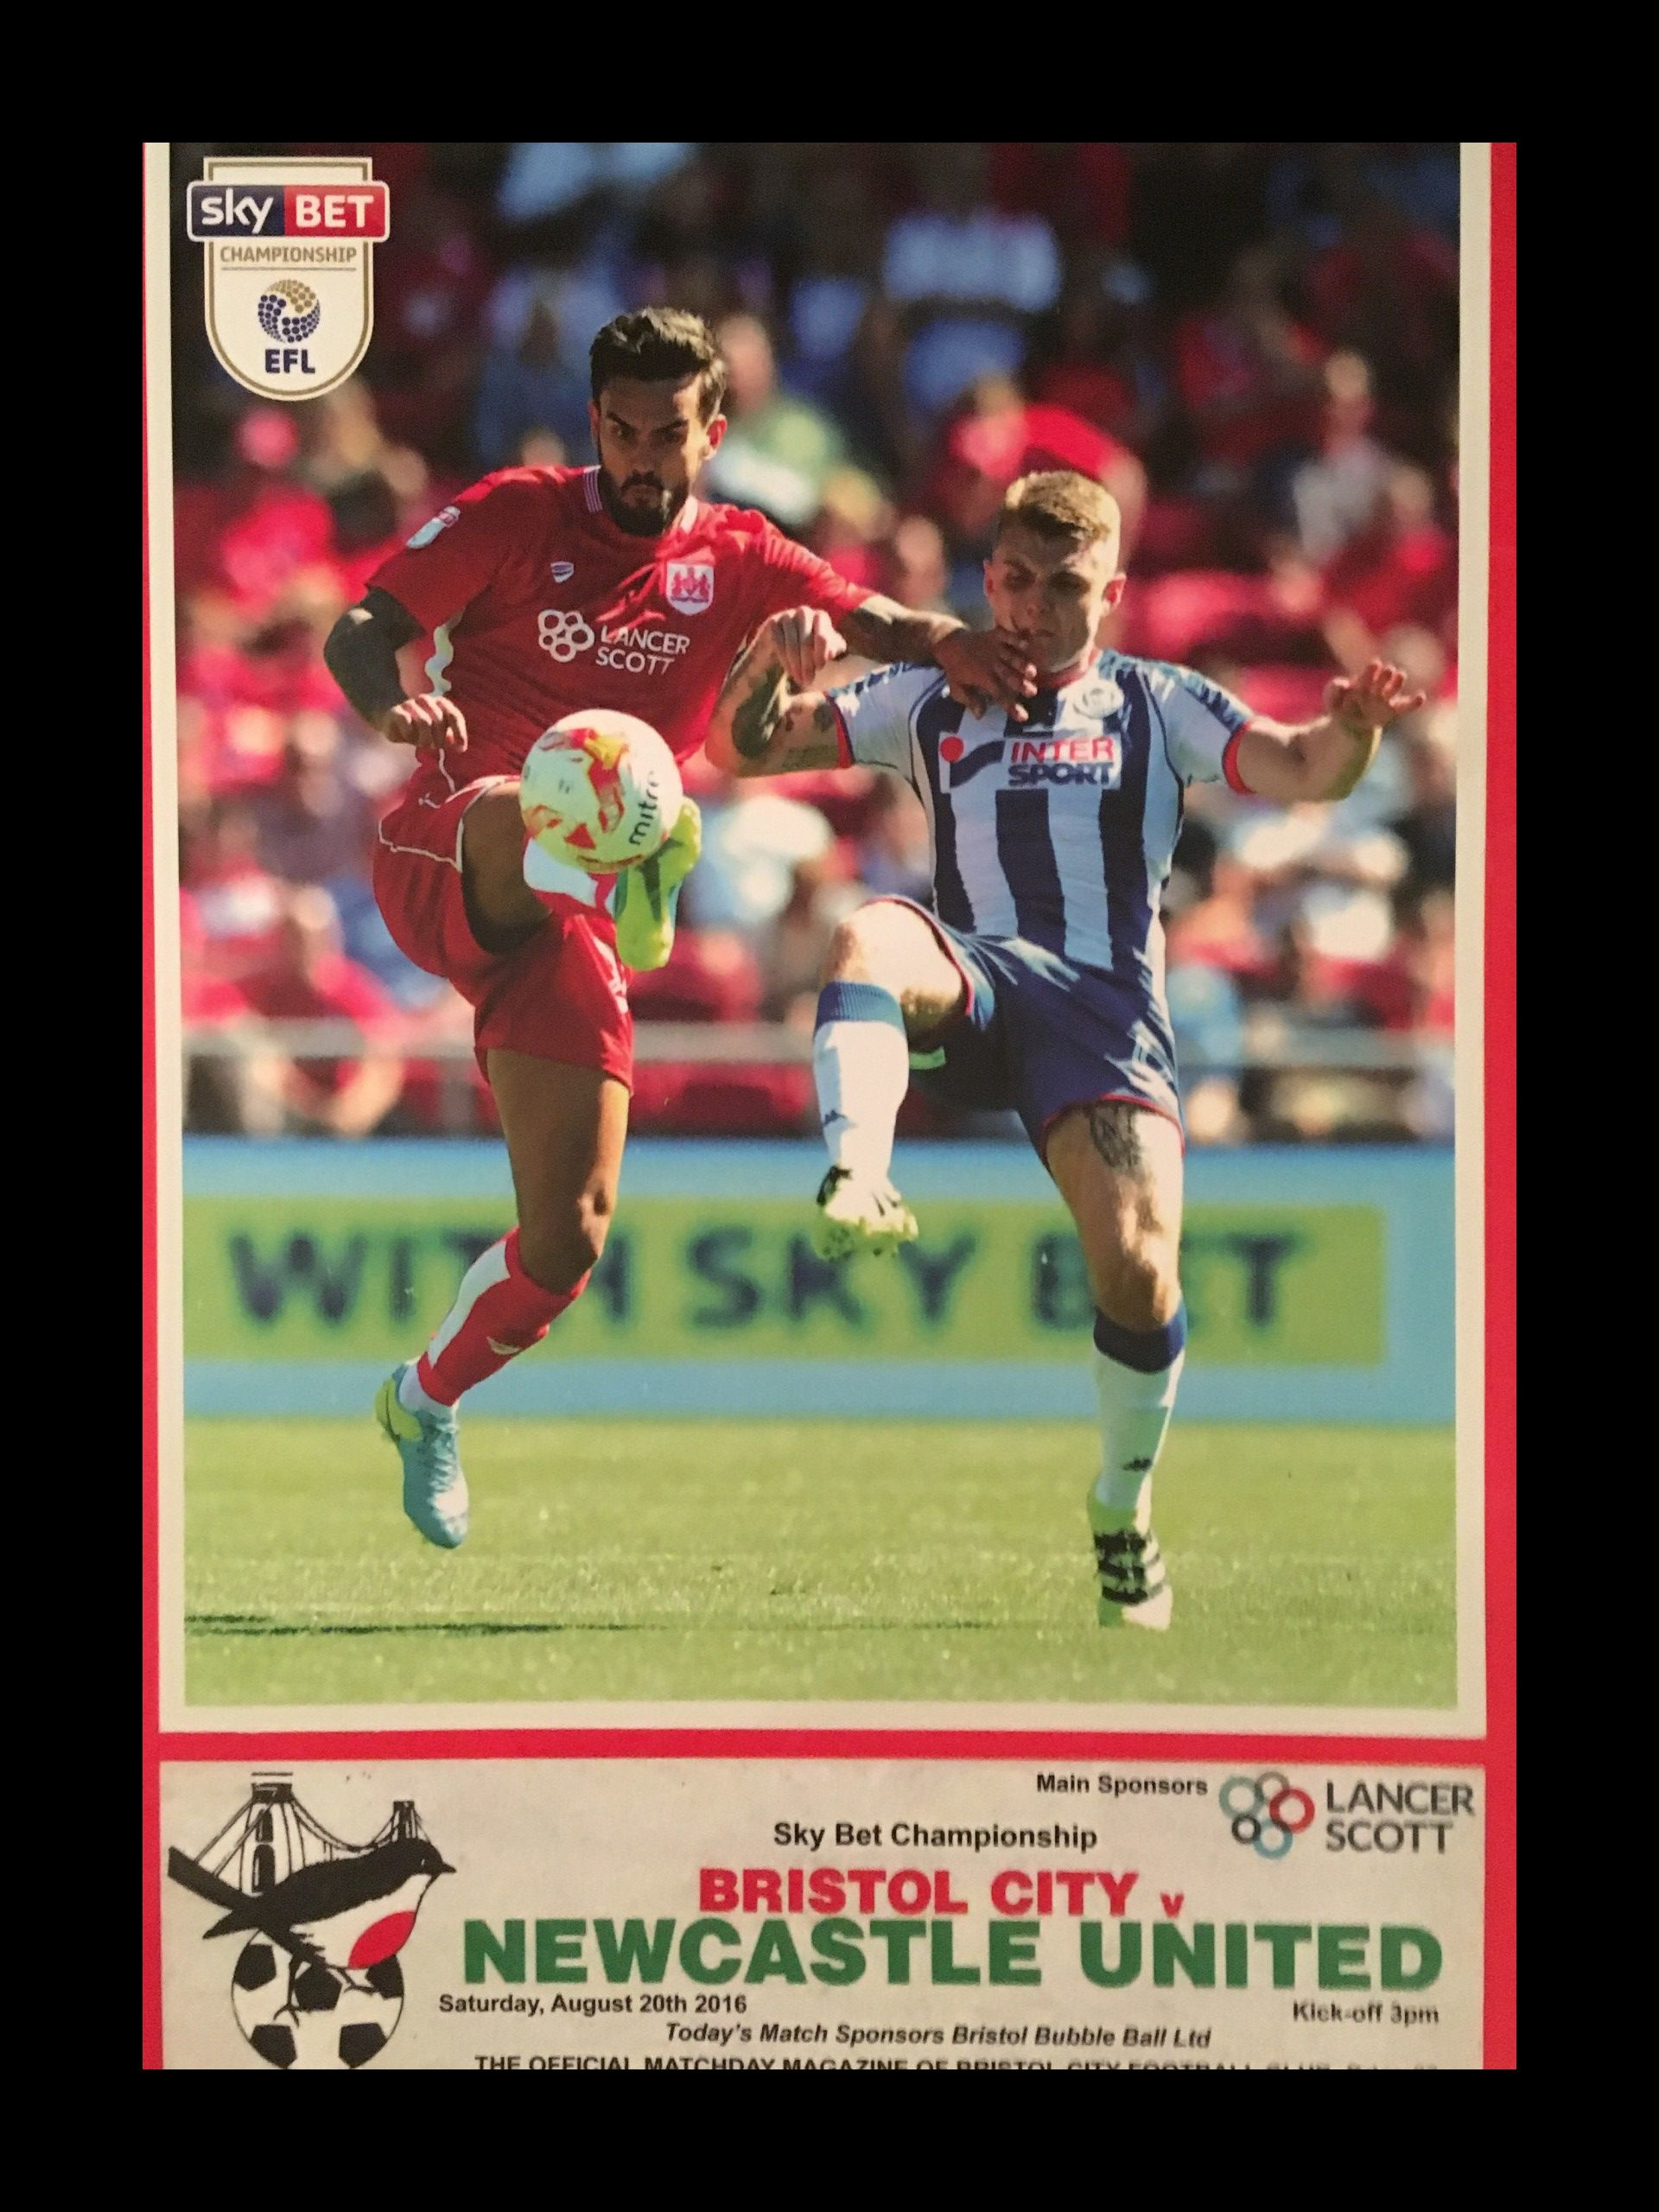 Bristol City v Newcastle United 20-08-2016 Programme